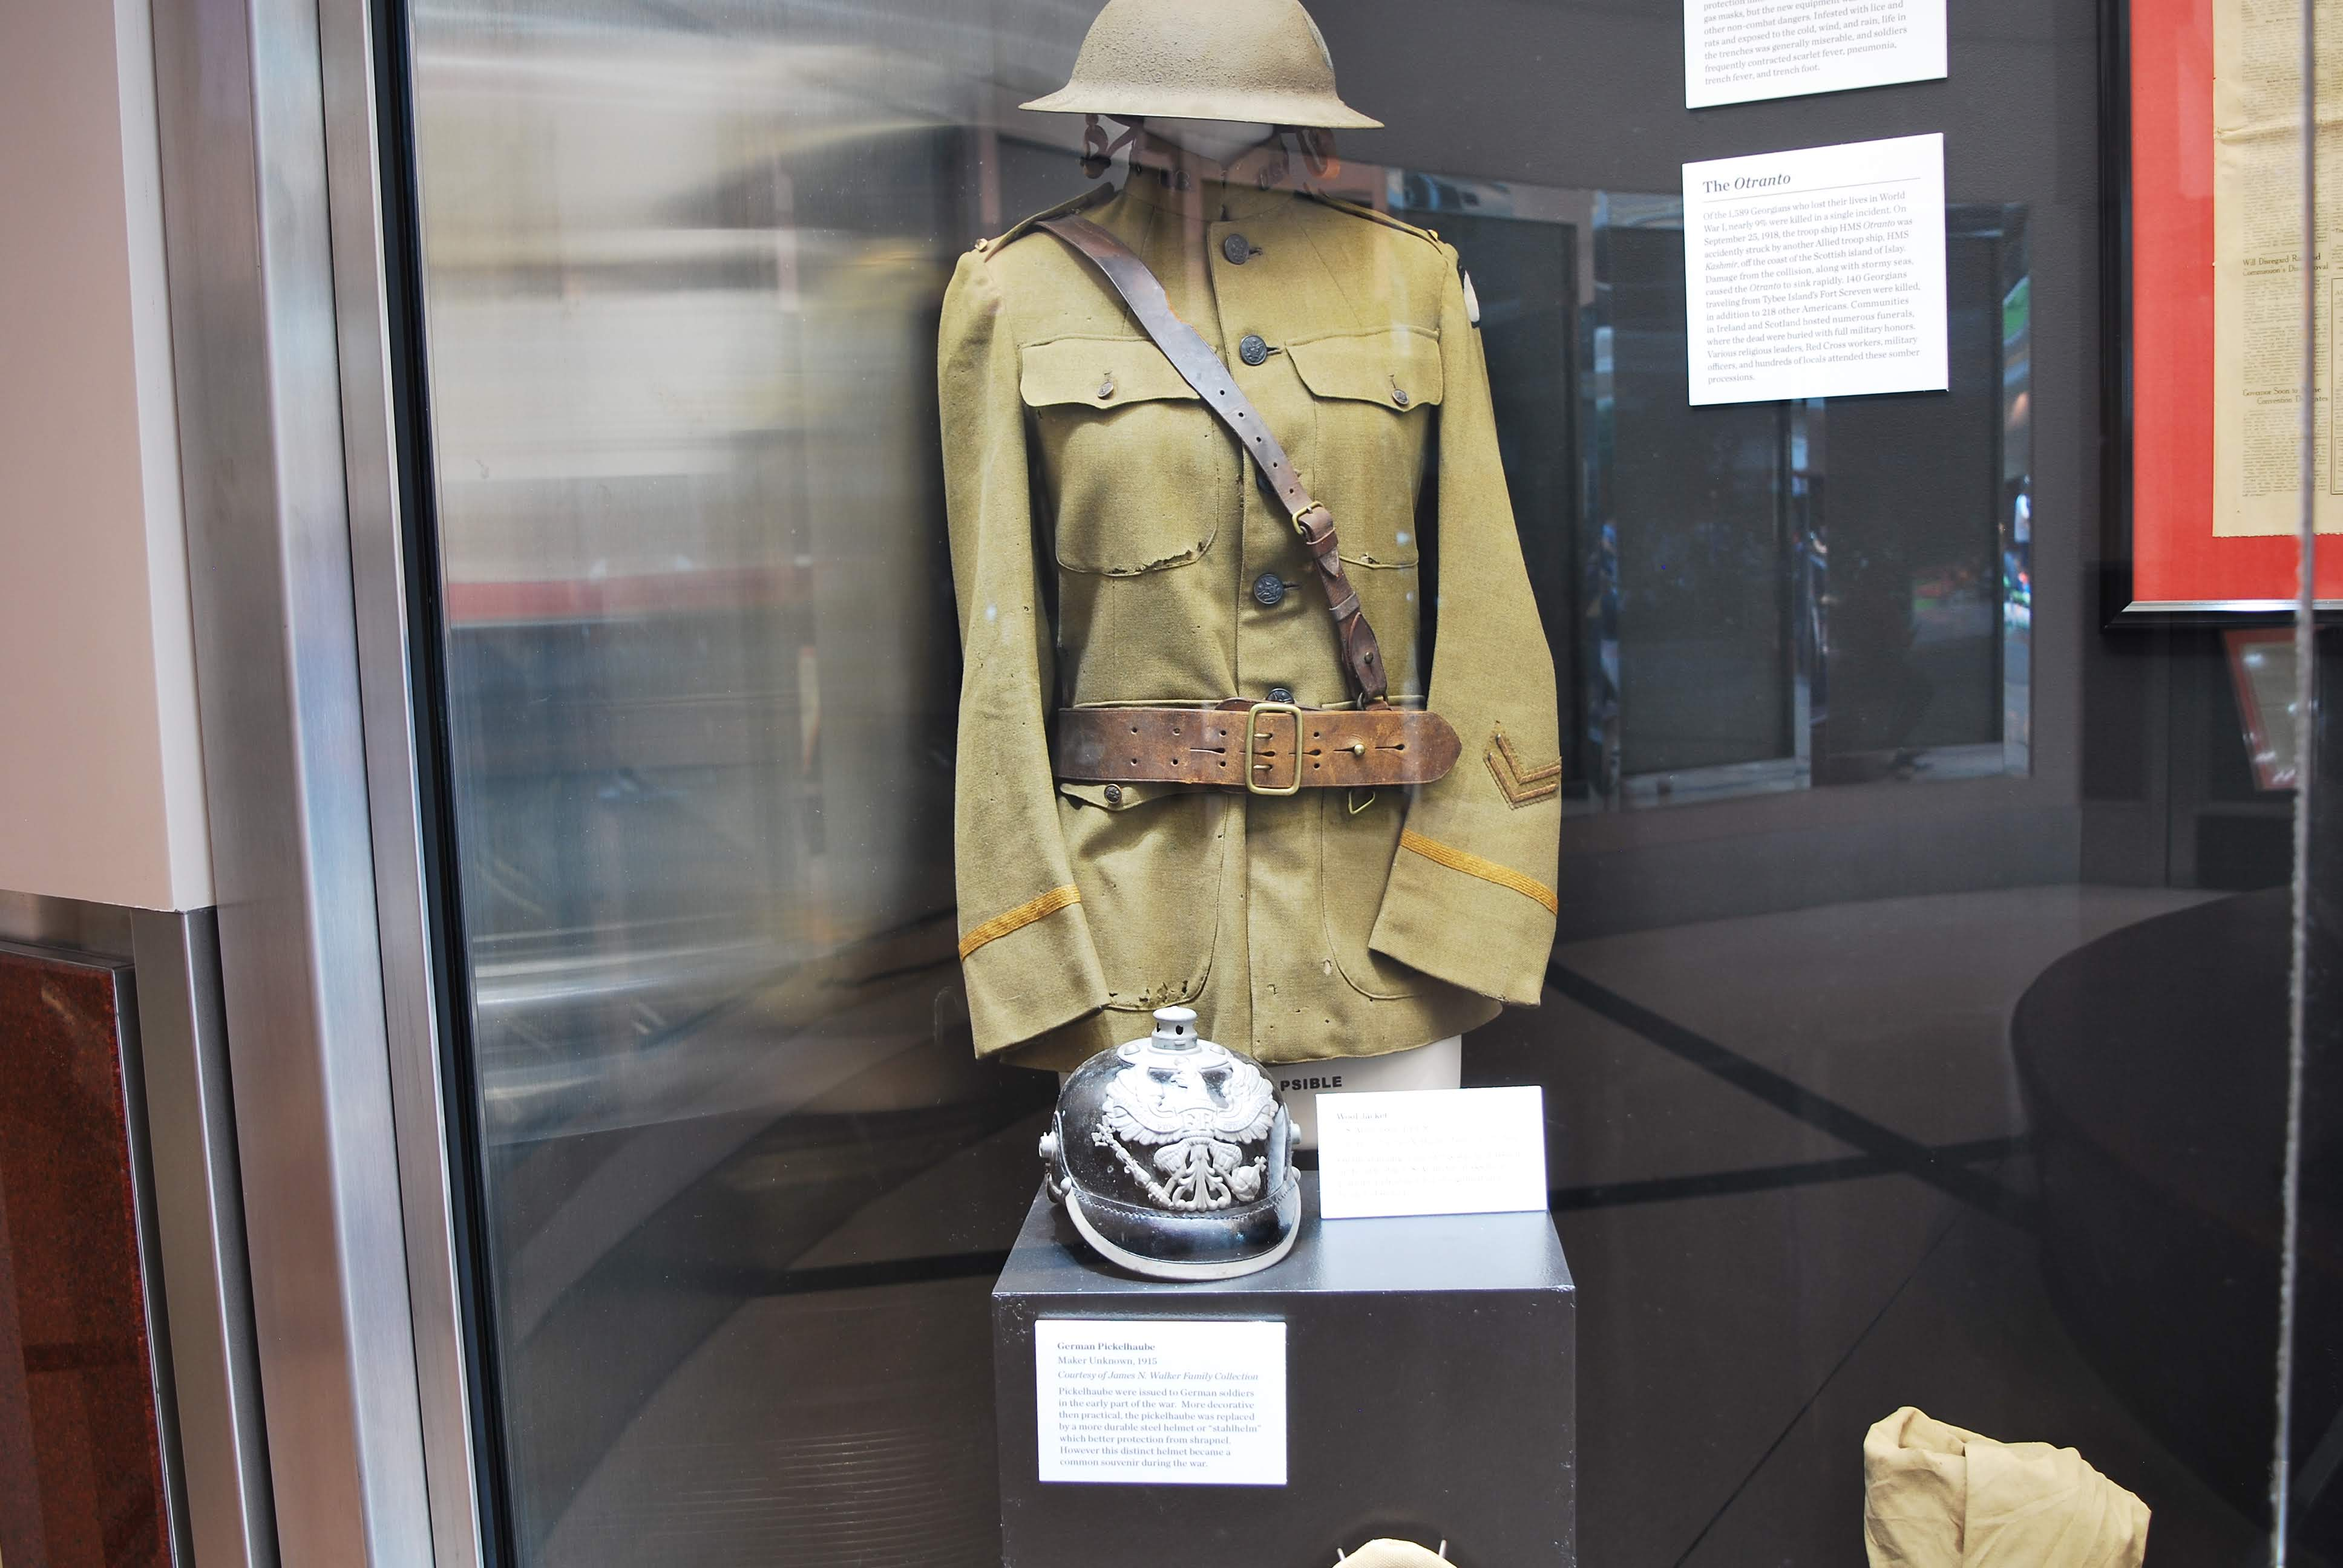 US army issued wool jacket and German Picklehaube helmet